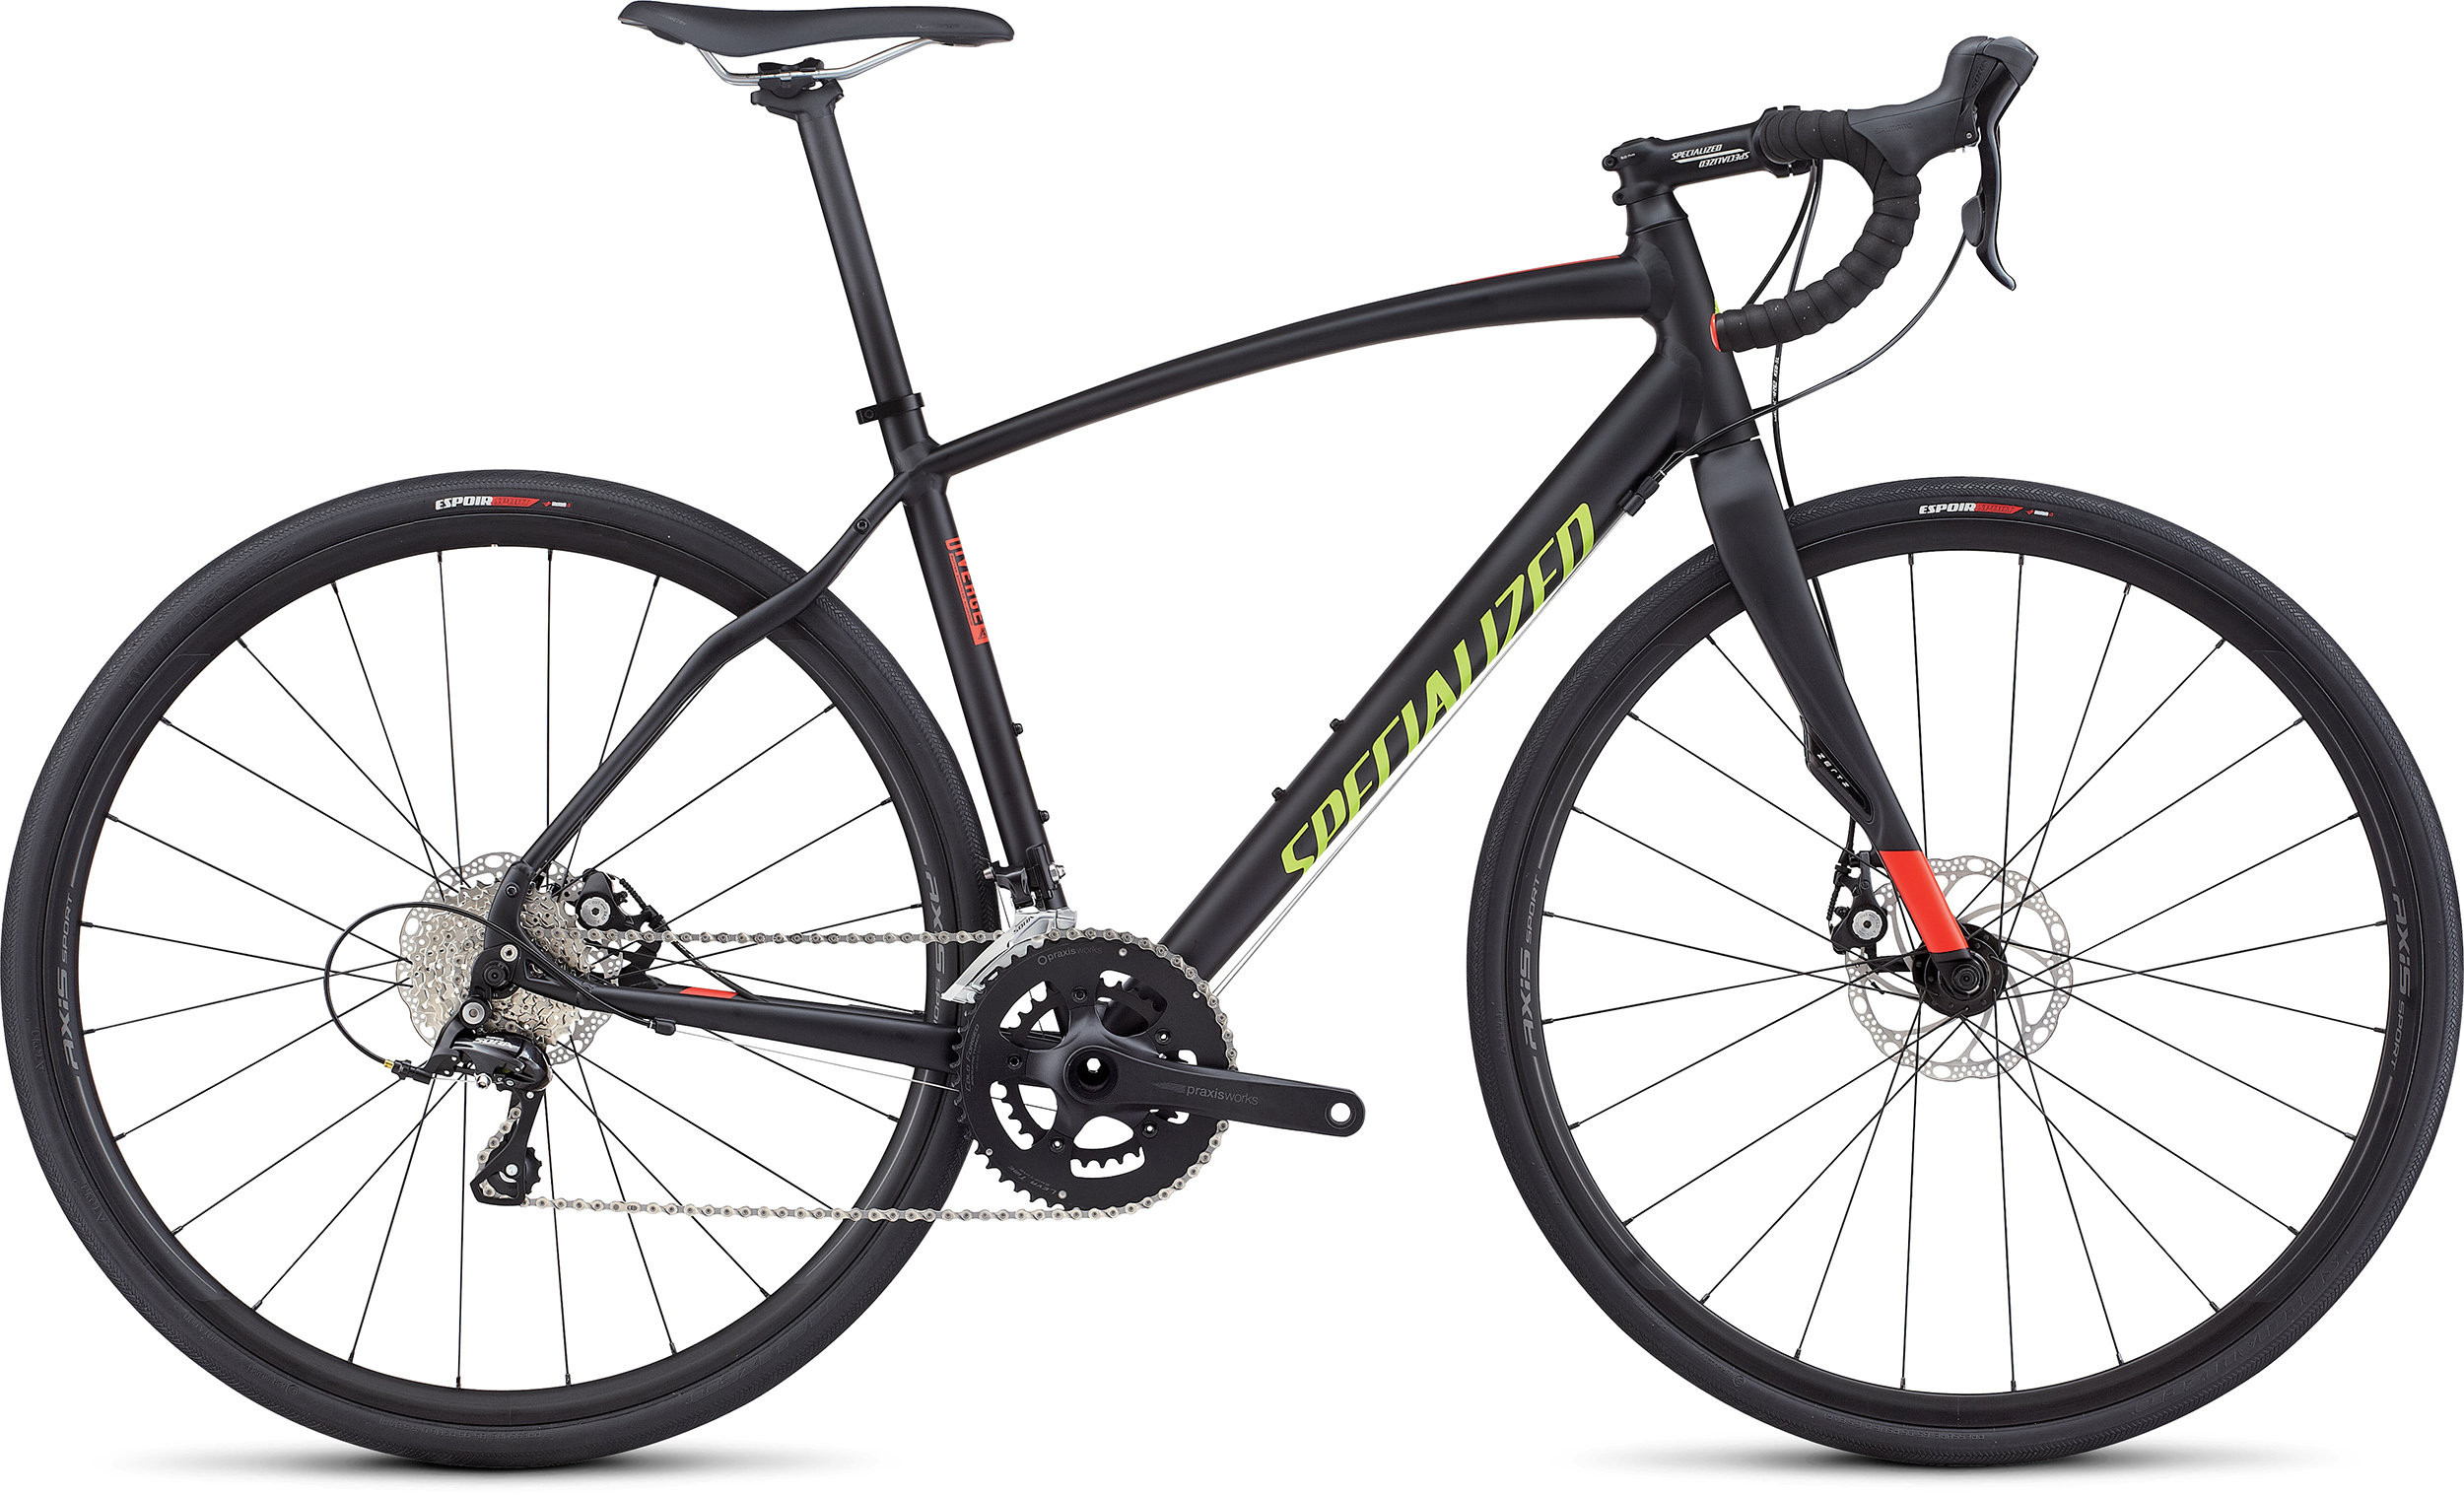 SPECIALIZED DIVERGE A1 Sport CEN RH 58 - SPECIALIZED DIVERGE A1 Sport CEN RH 58